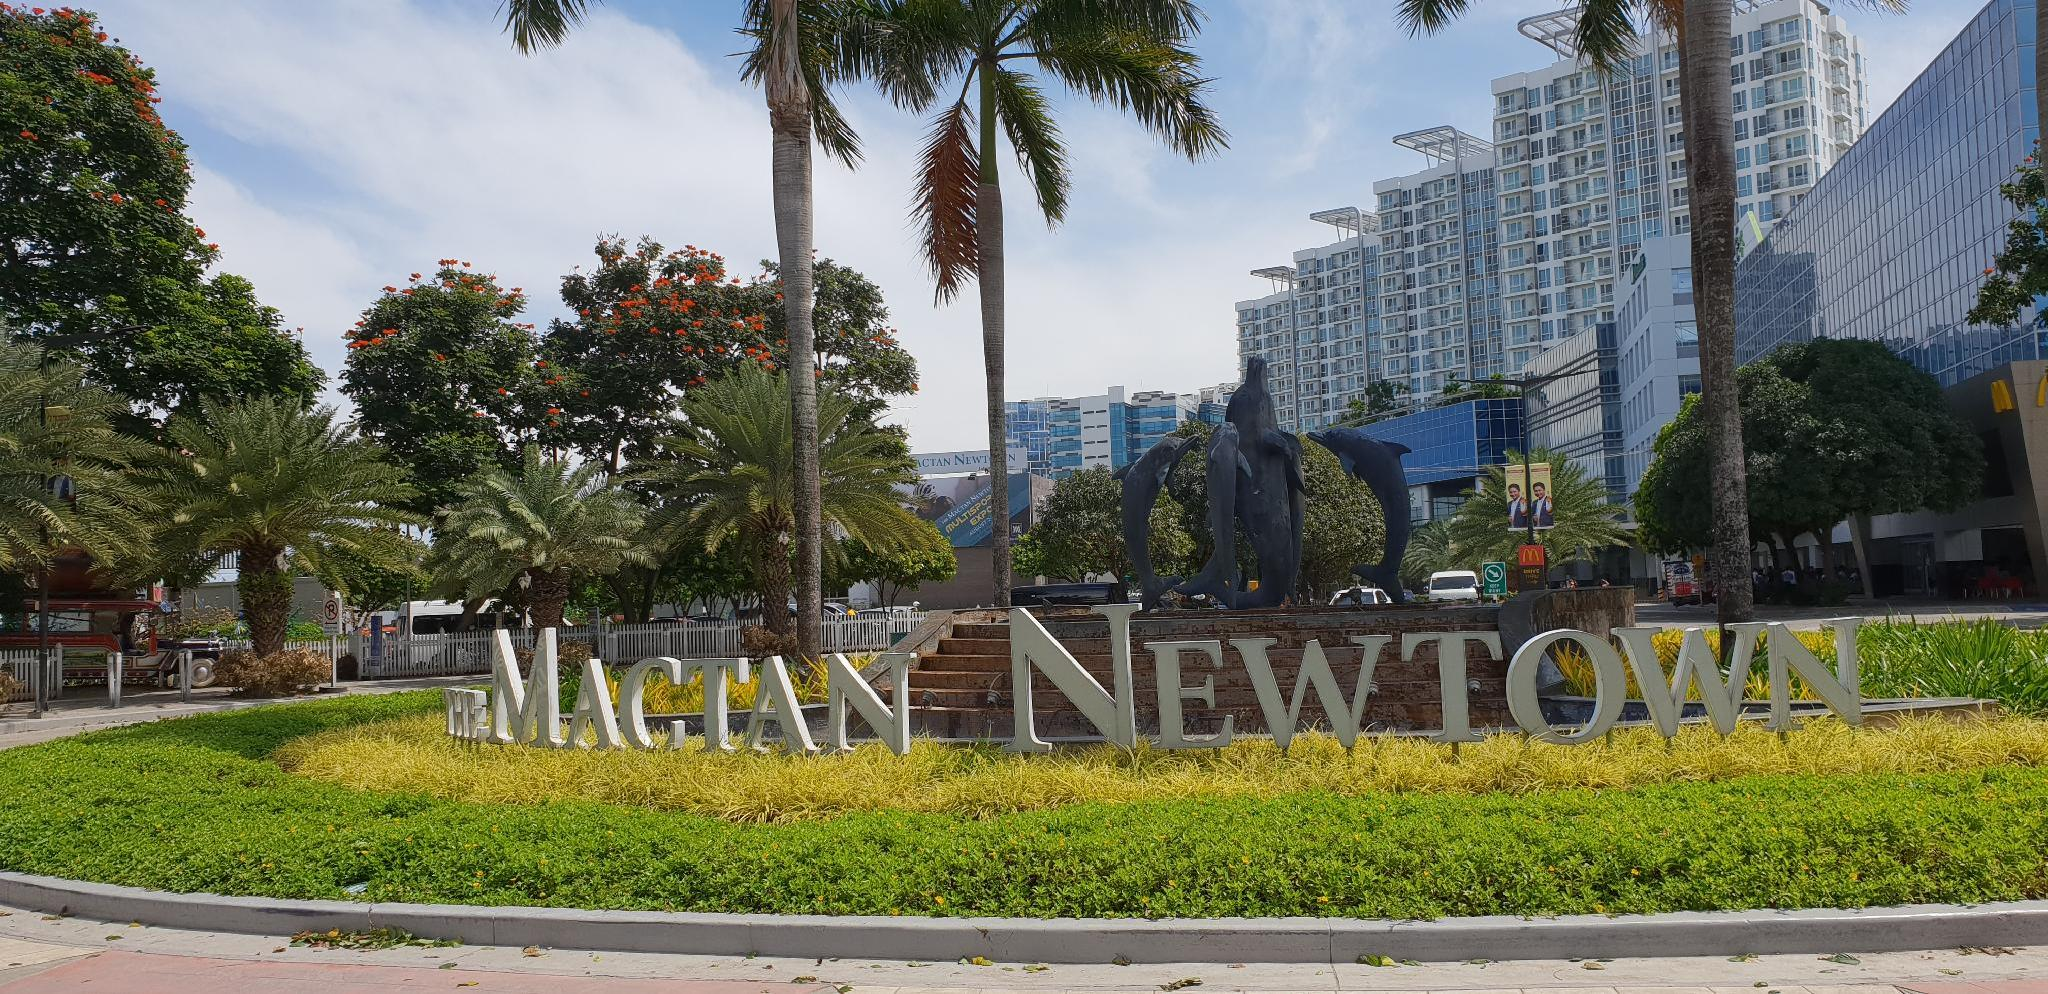 Mactan Newtown With Green Trees And Sea View